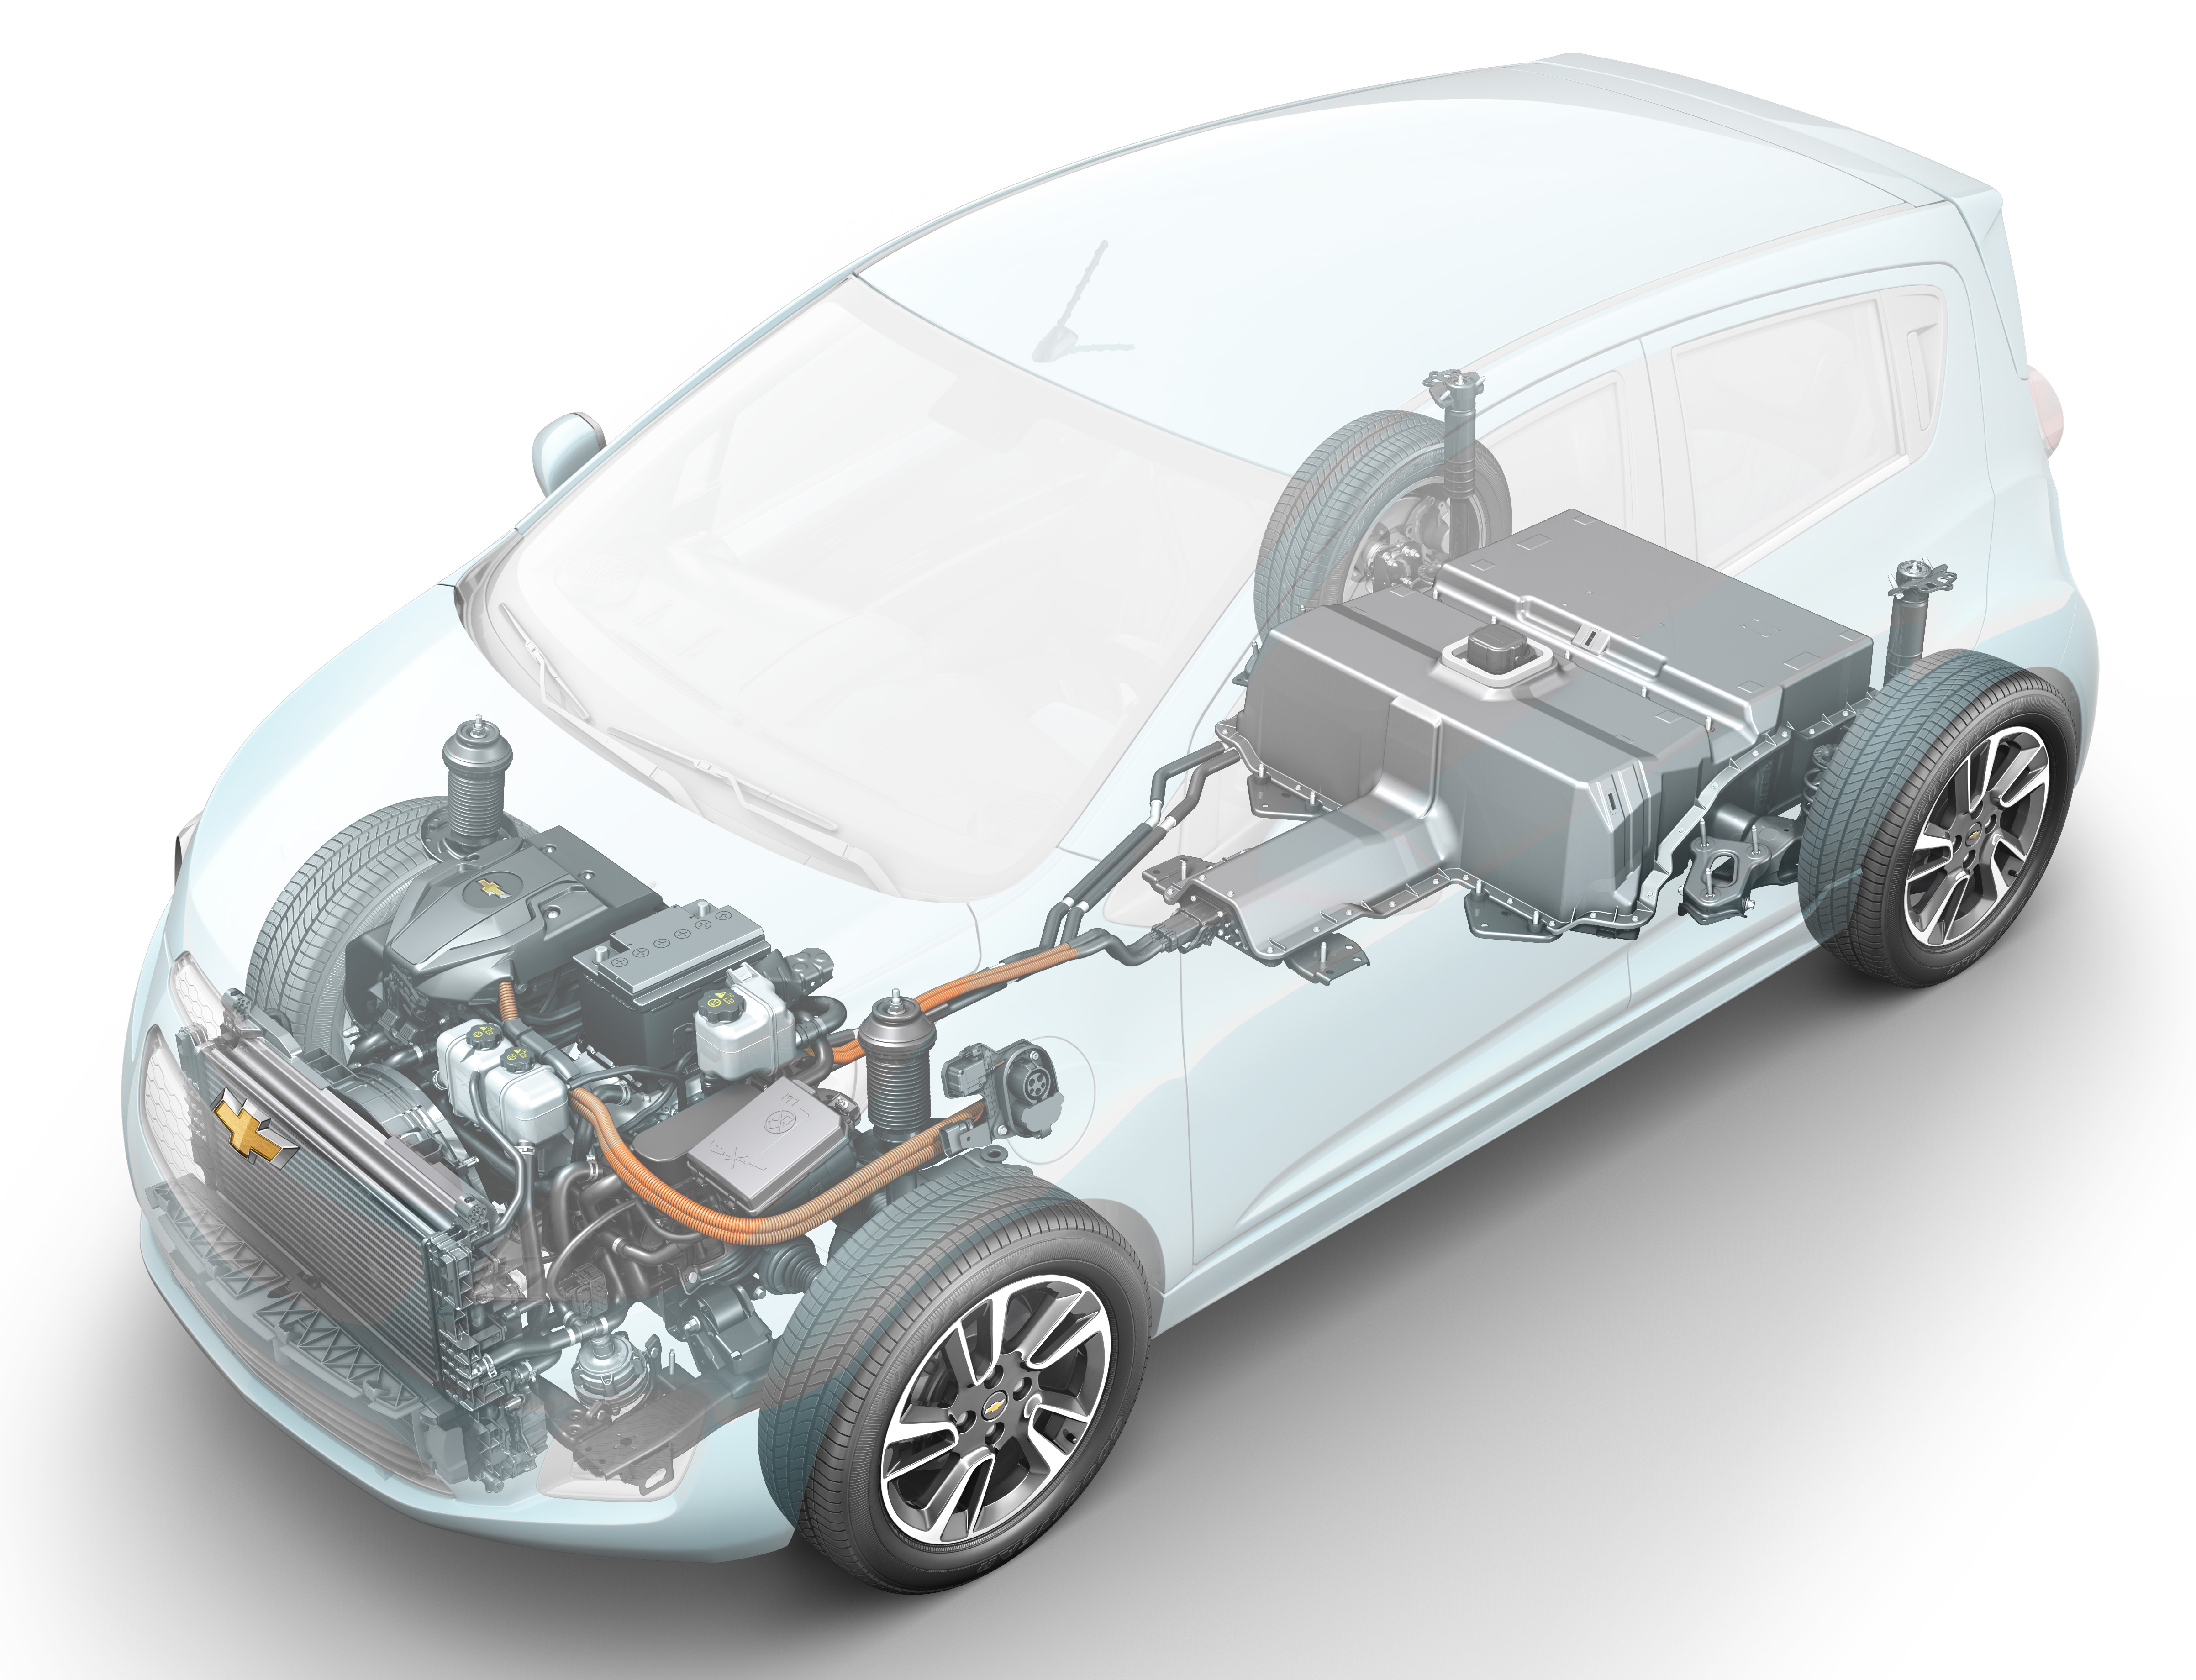 news of the gm    a123 spark ev comes right on time